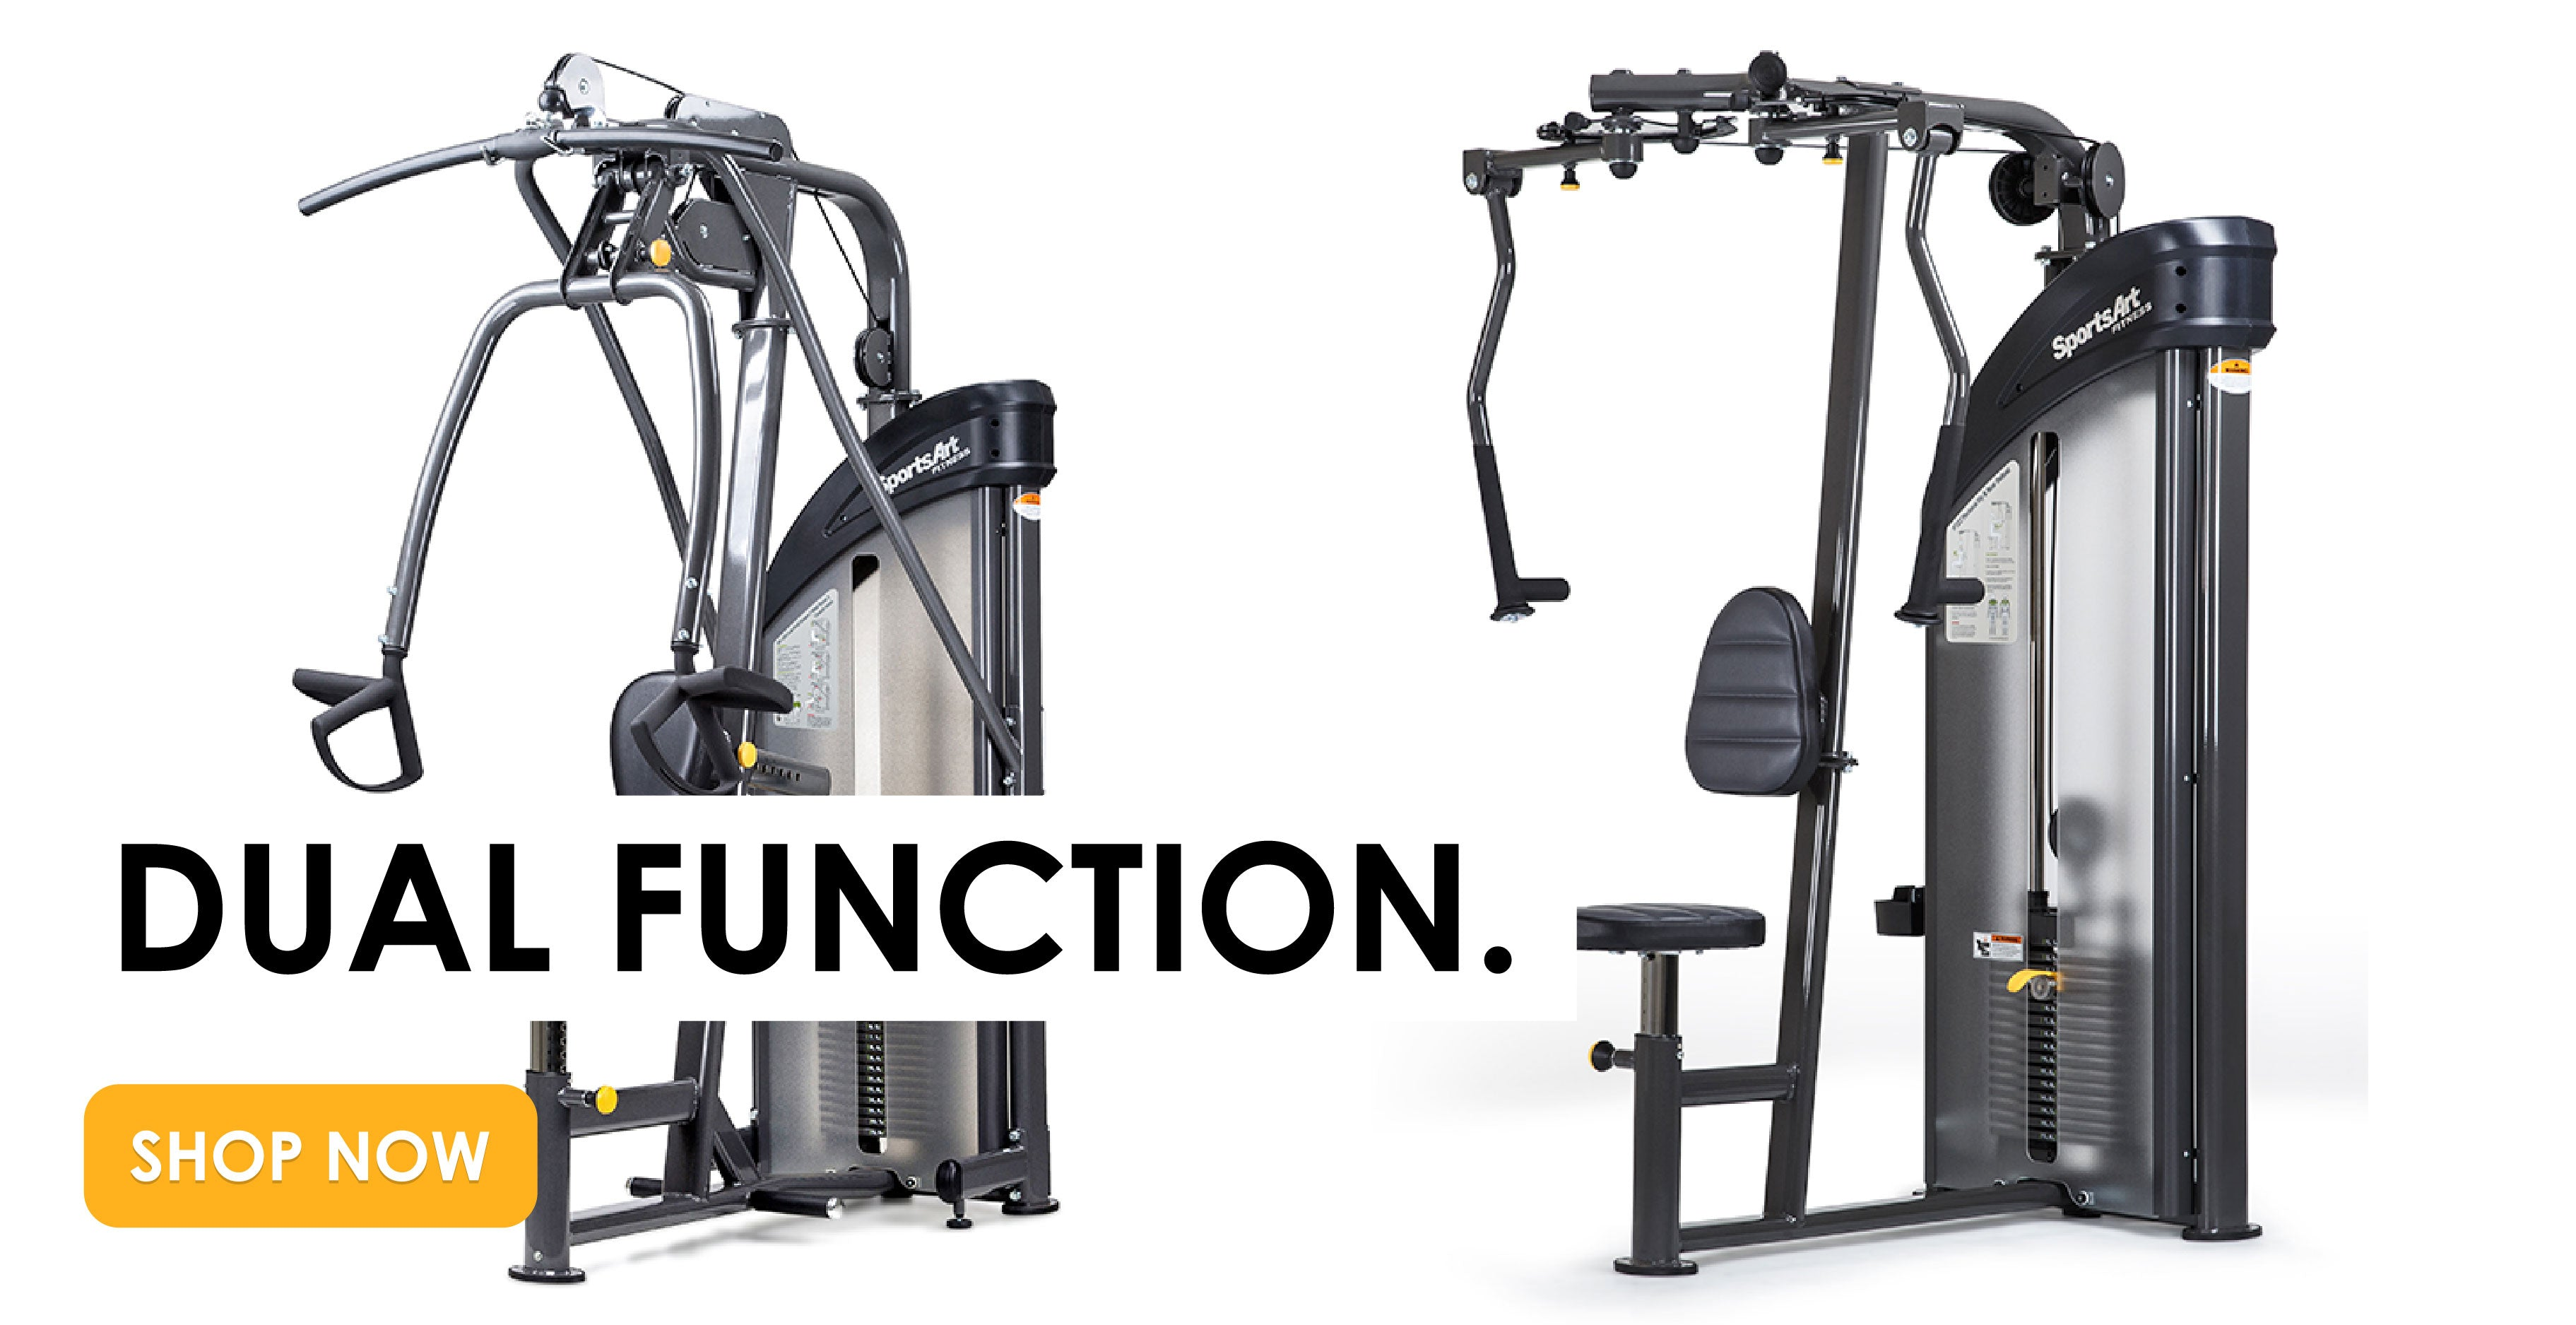 Dual Function Gym Equipment